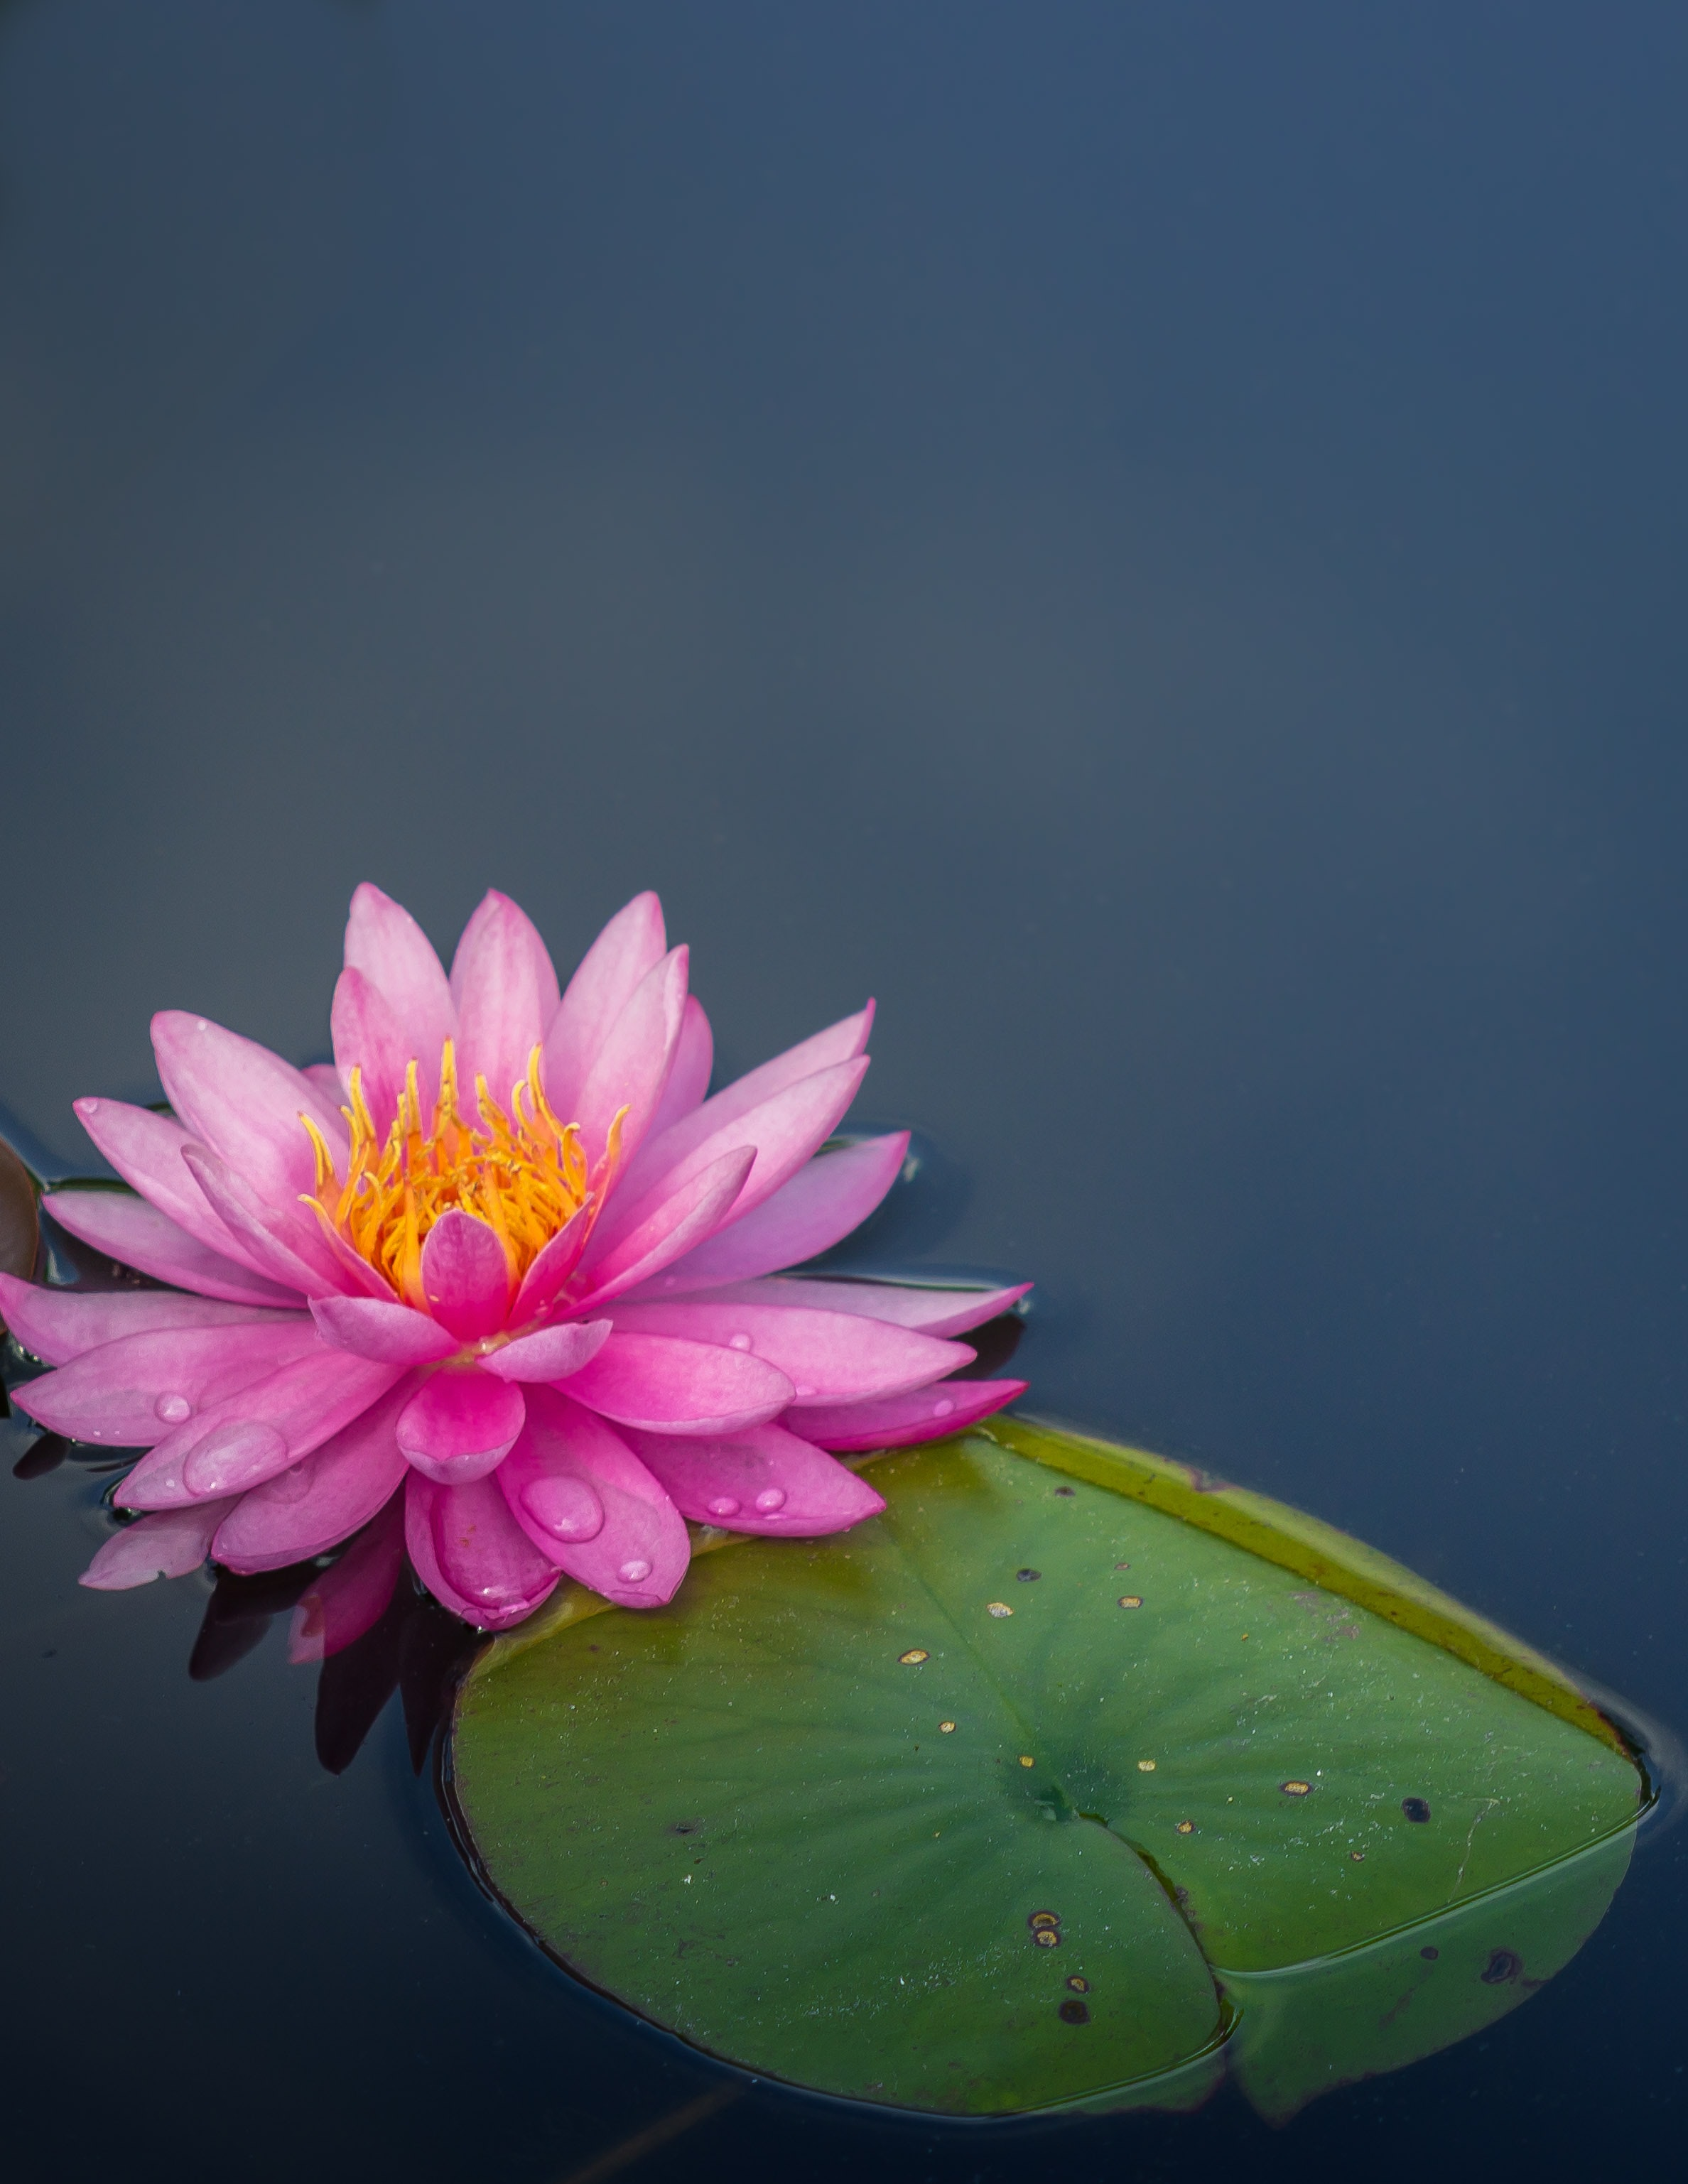 pink lotus flower on body of water